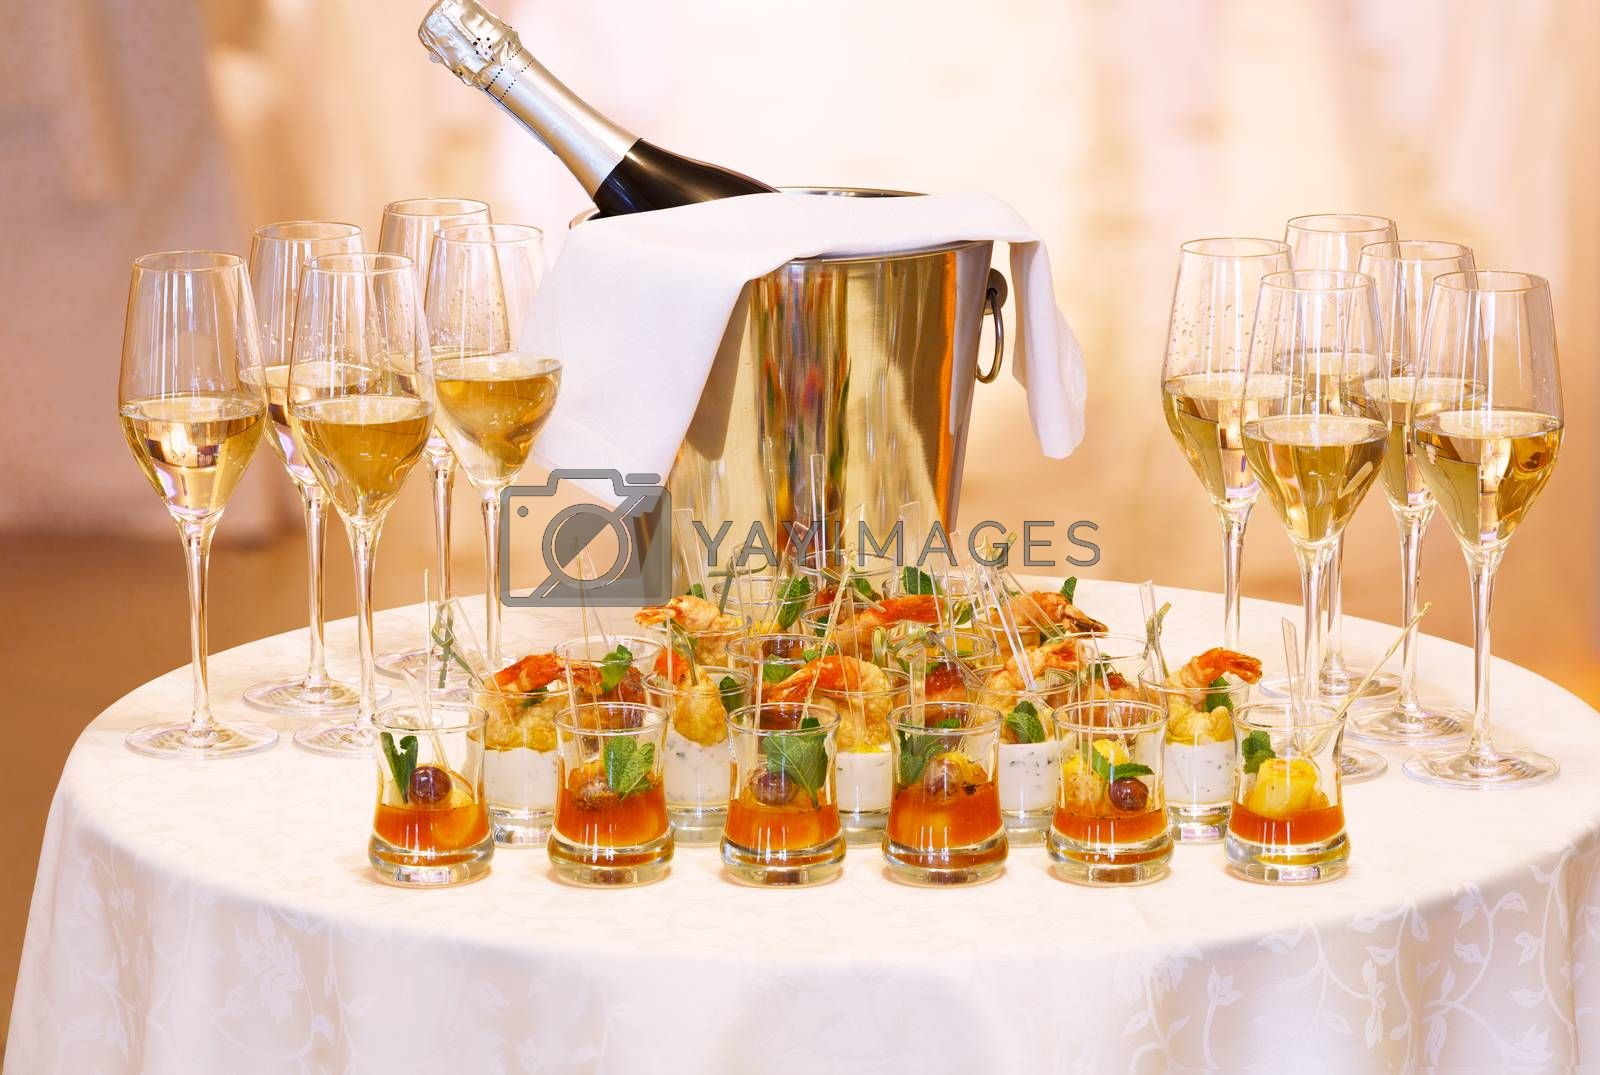 Royalty free image of Festive table by maxsol